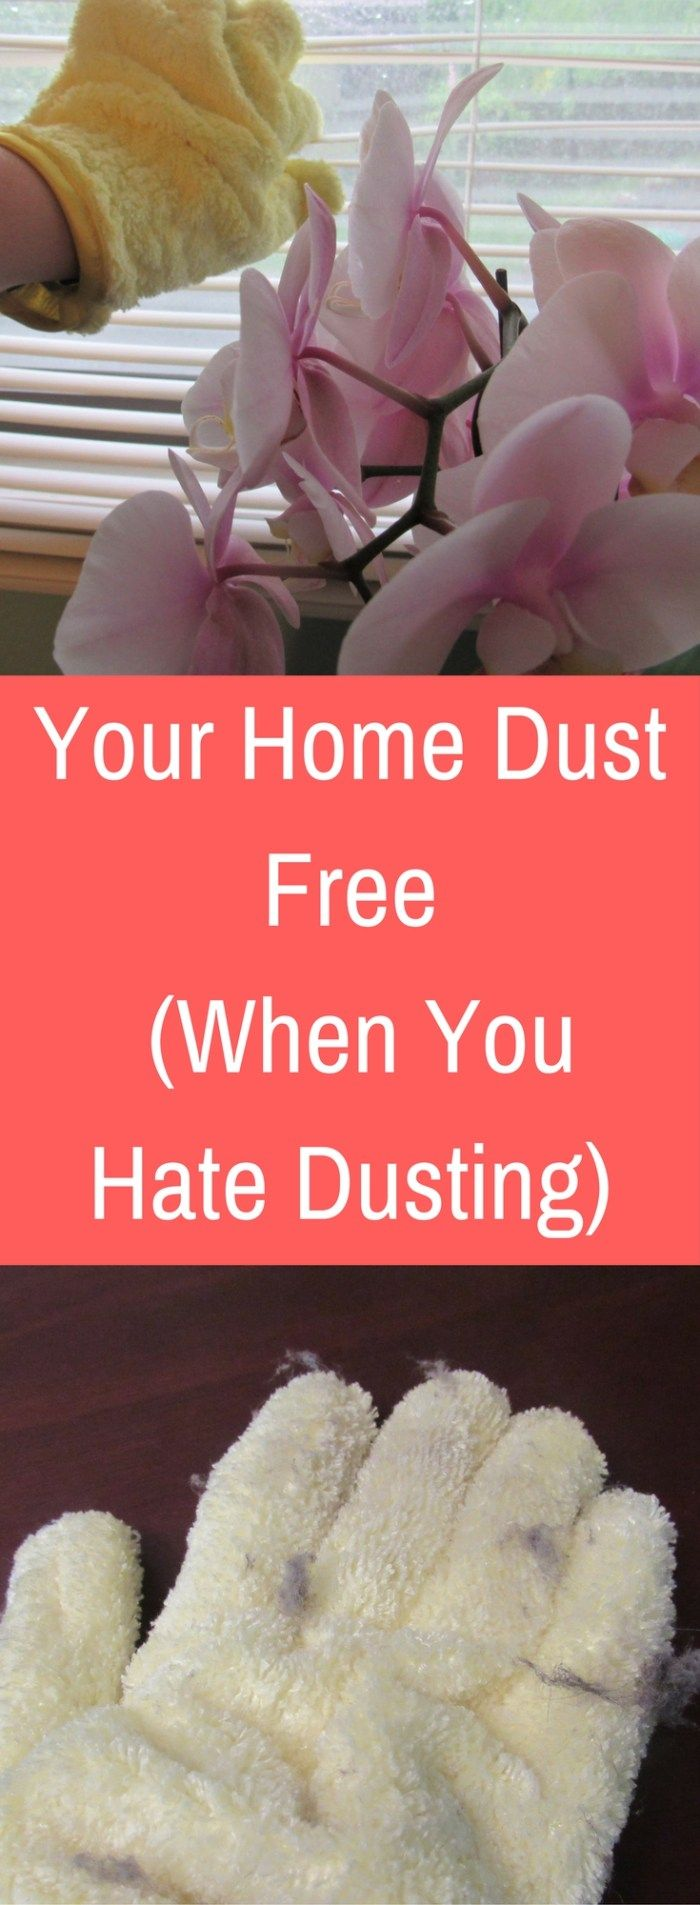 How to Keep Your Home Dust Free (When You Hate Dusting) | Cleaning Tips | Dusting Tips